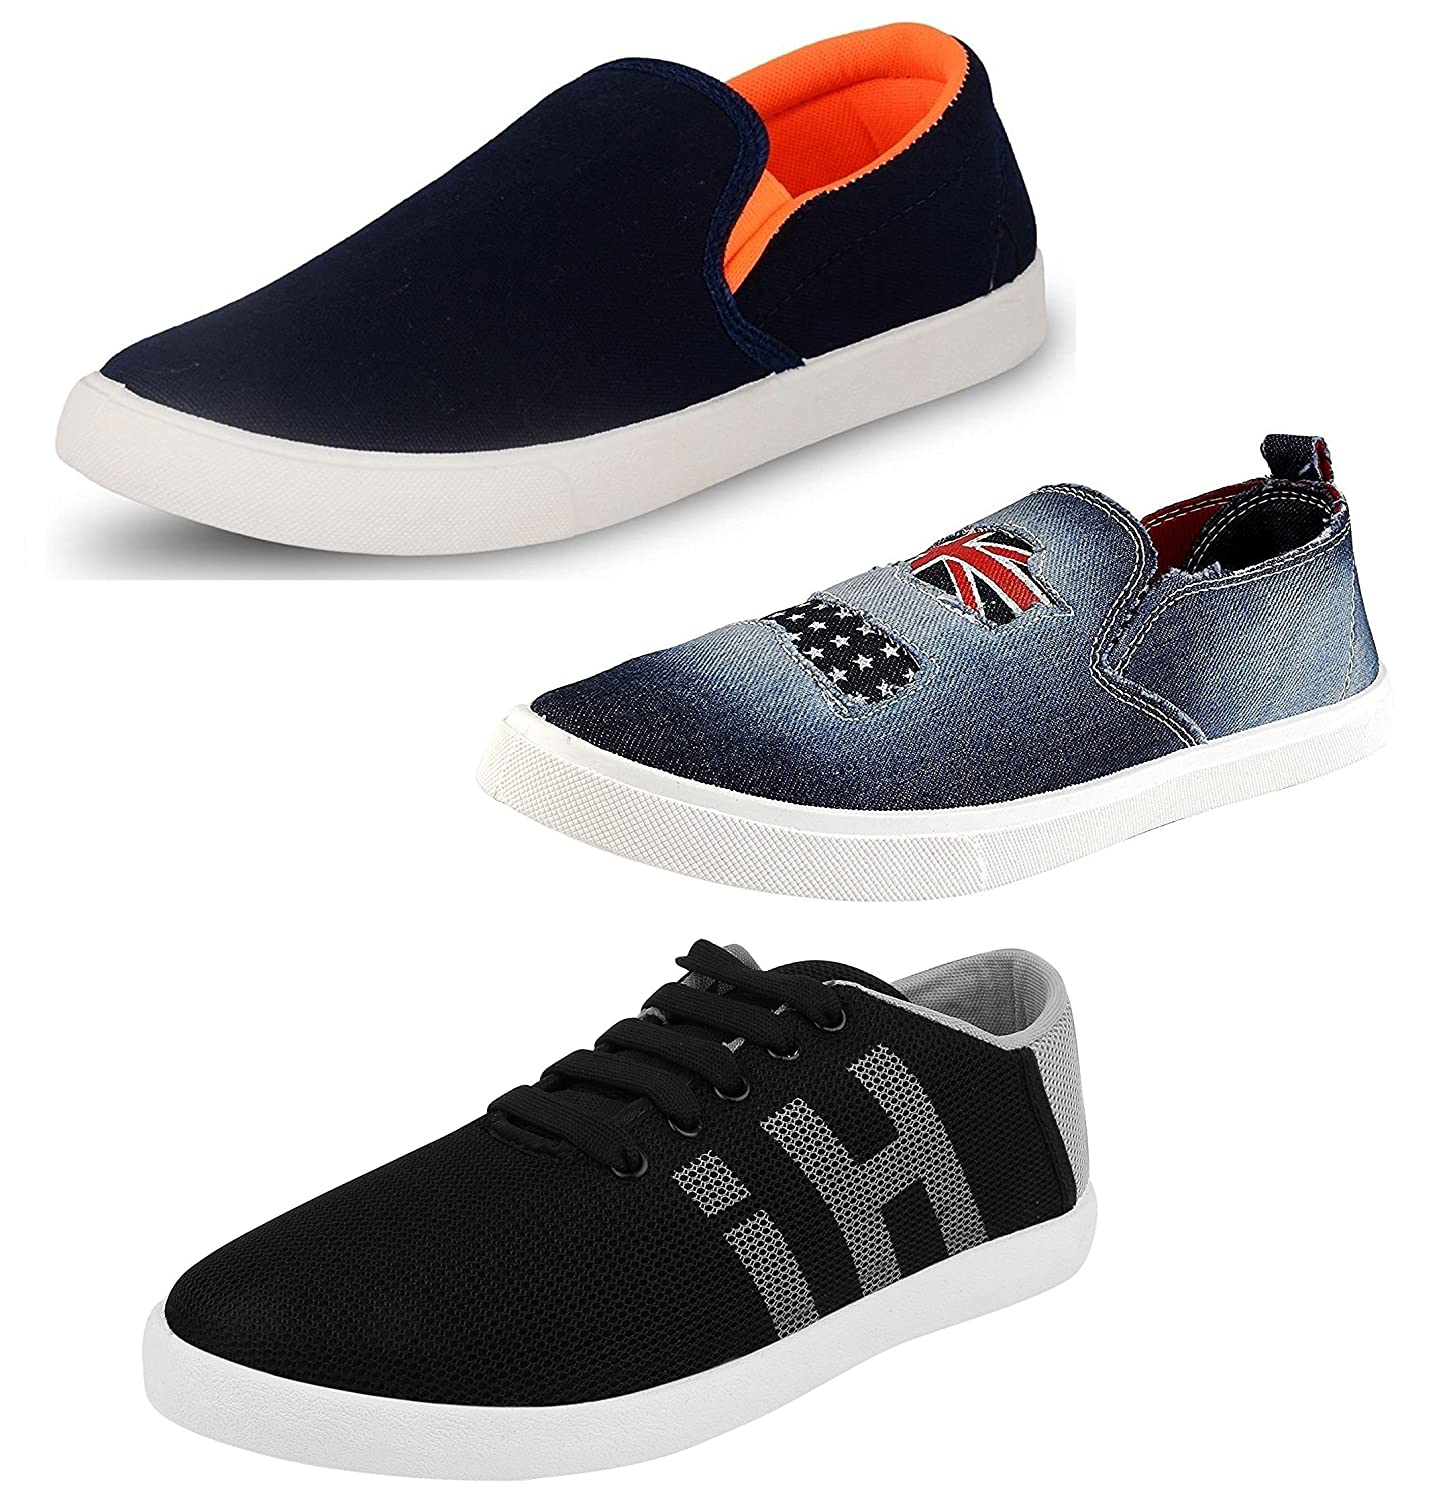 Chevit Men's Pack of 3 Casual Sneakers Shoes